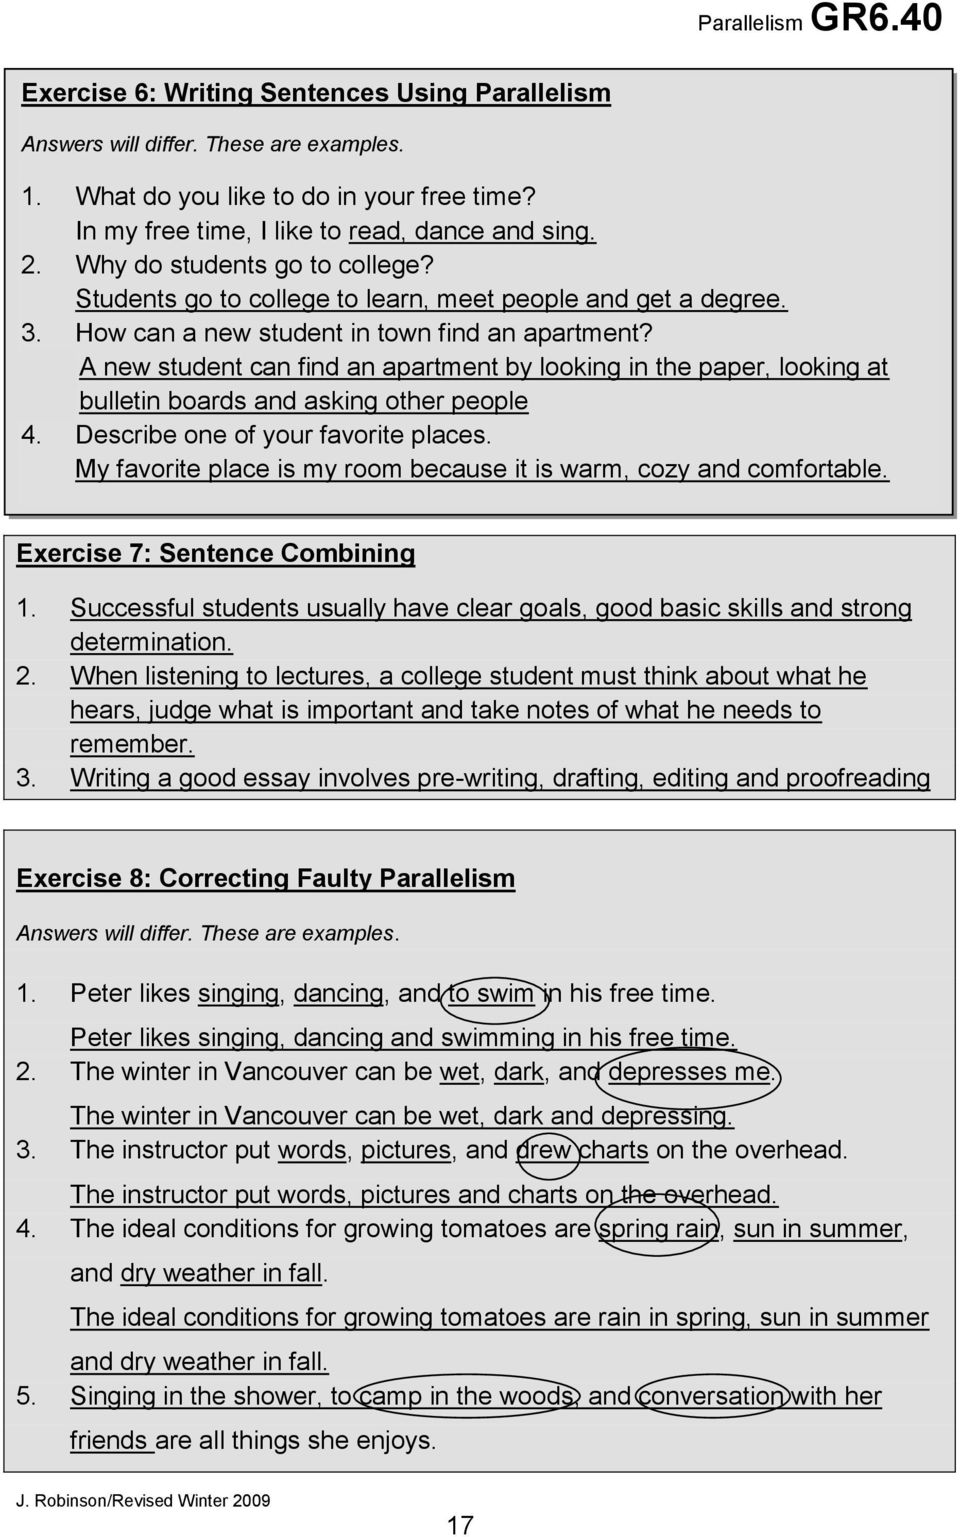 determination essay learning centre parallelism pdf hard work and  learning centre parallelism pdf a new student can an apartment by looking in the paper looking hard work and determination essays online